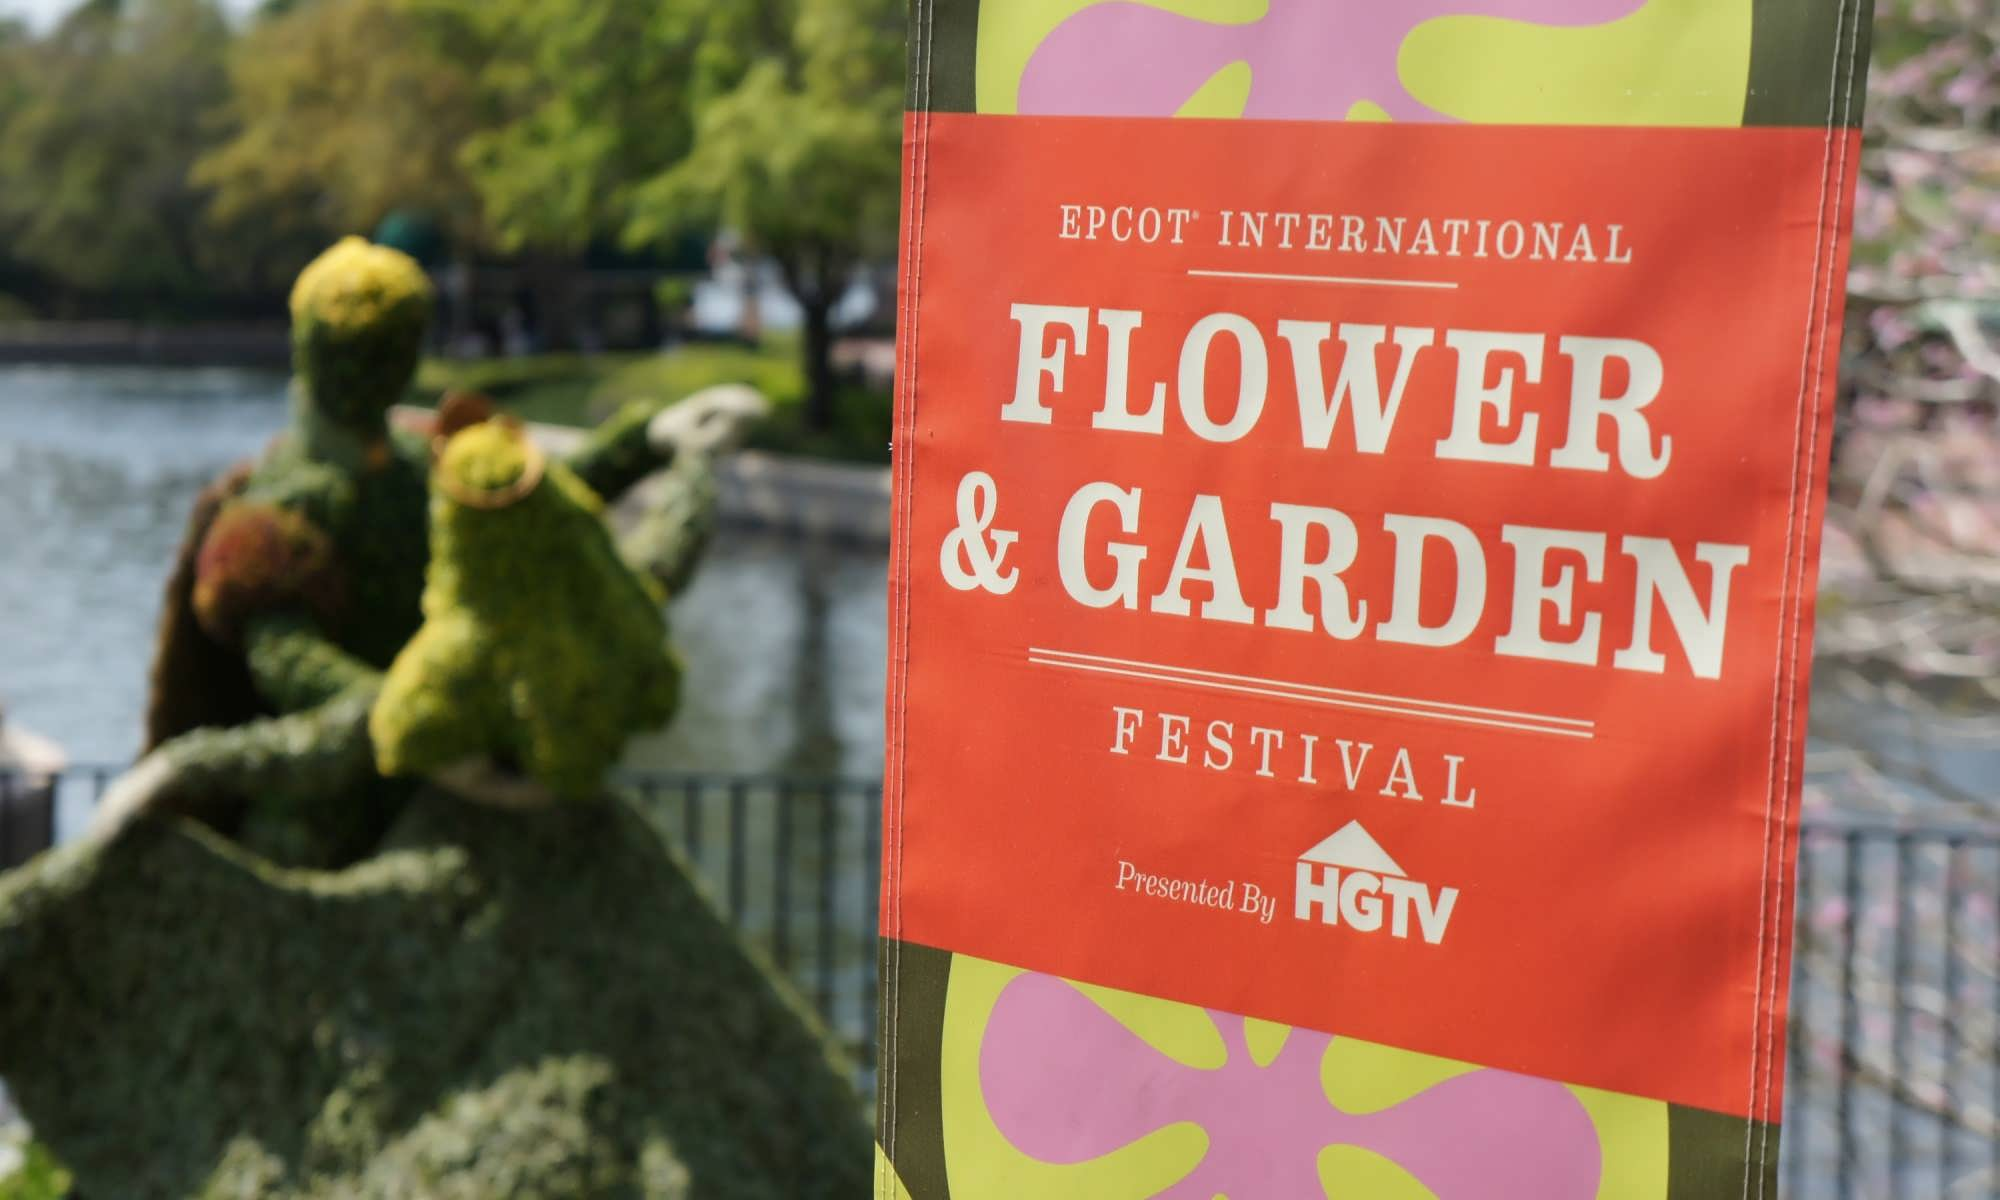 Food Competes with Flowers for Top Billing at 2014 Epcot International Flower & Garden Festival 1